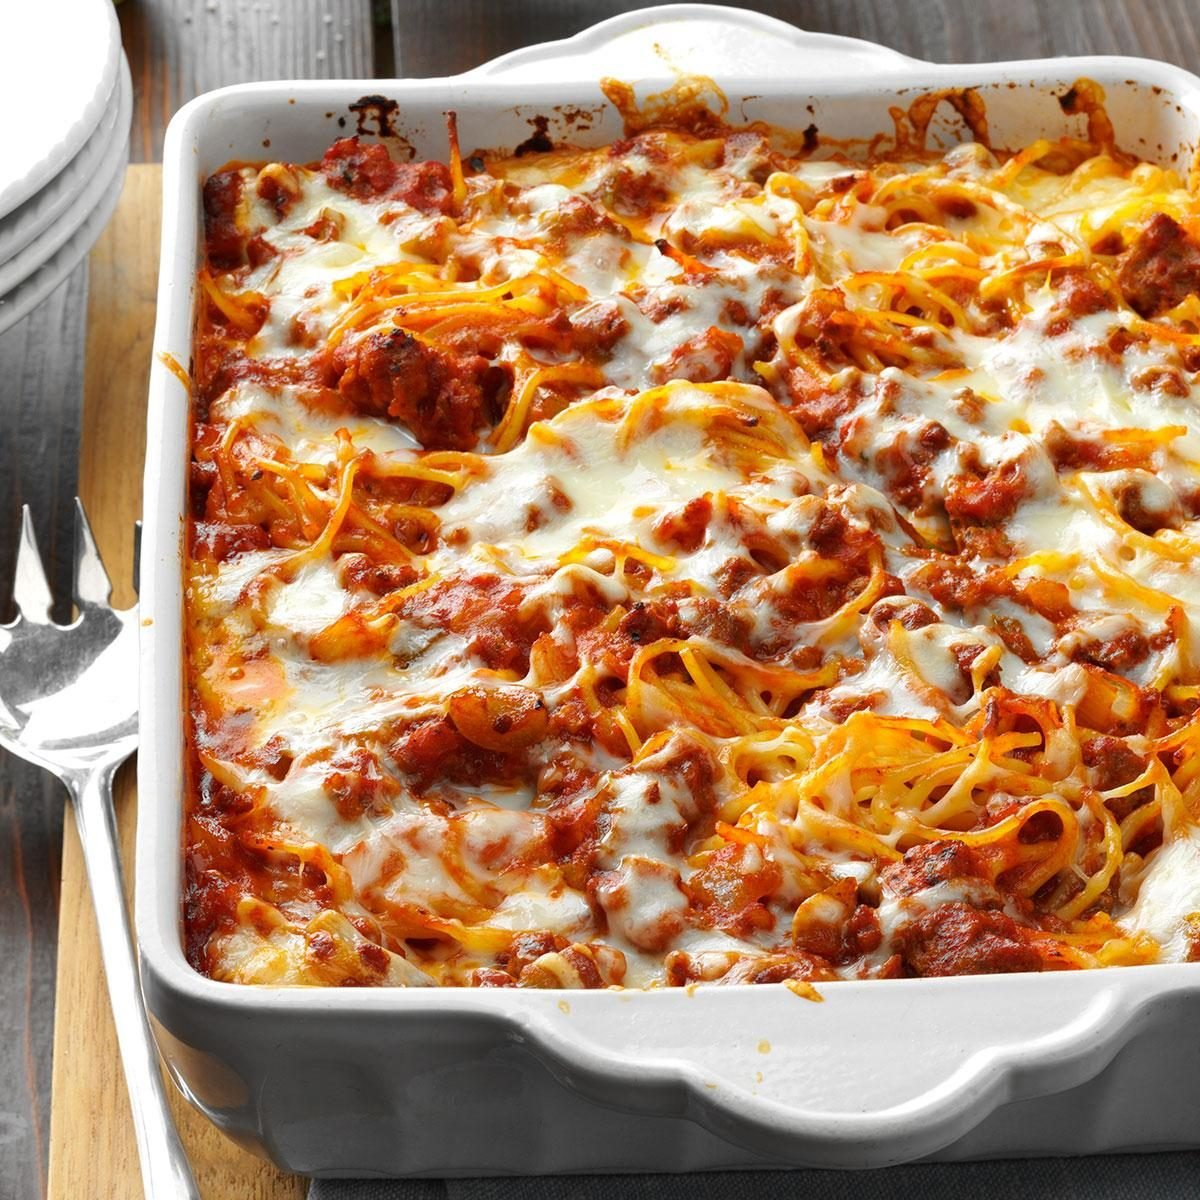 Mozzarella Baked Spaghetti Recipe | Taste of Home